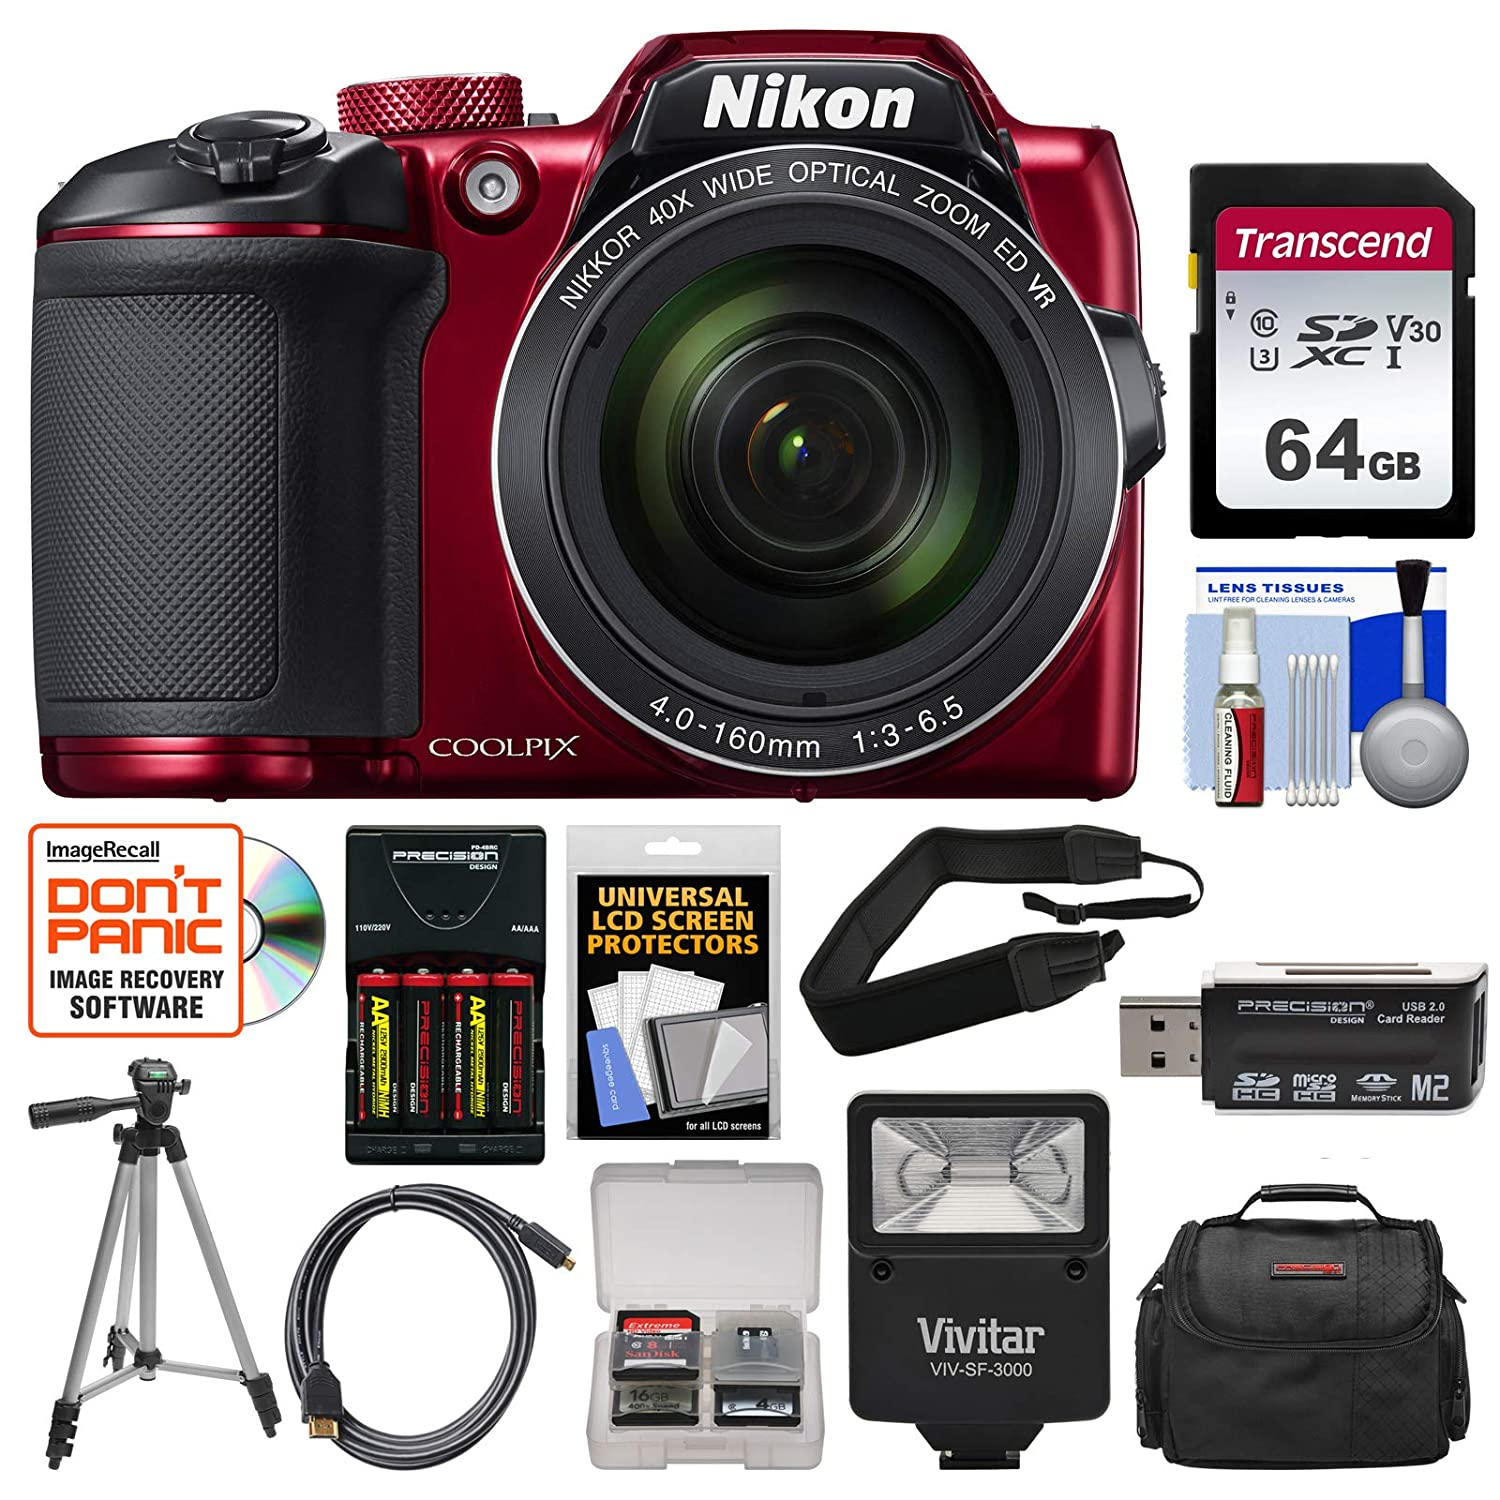 Nikon Coolpix B500 Wi-Fi Digital Camera (Red) with 64GB Card + Case + Flash + Batteries & Charger + Tripod + Strap + Kit